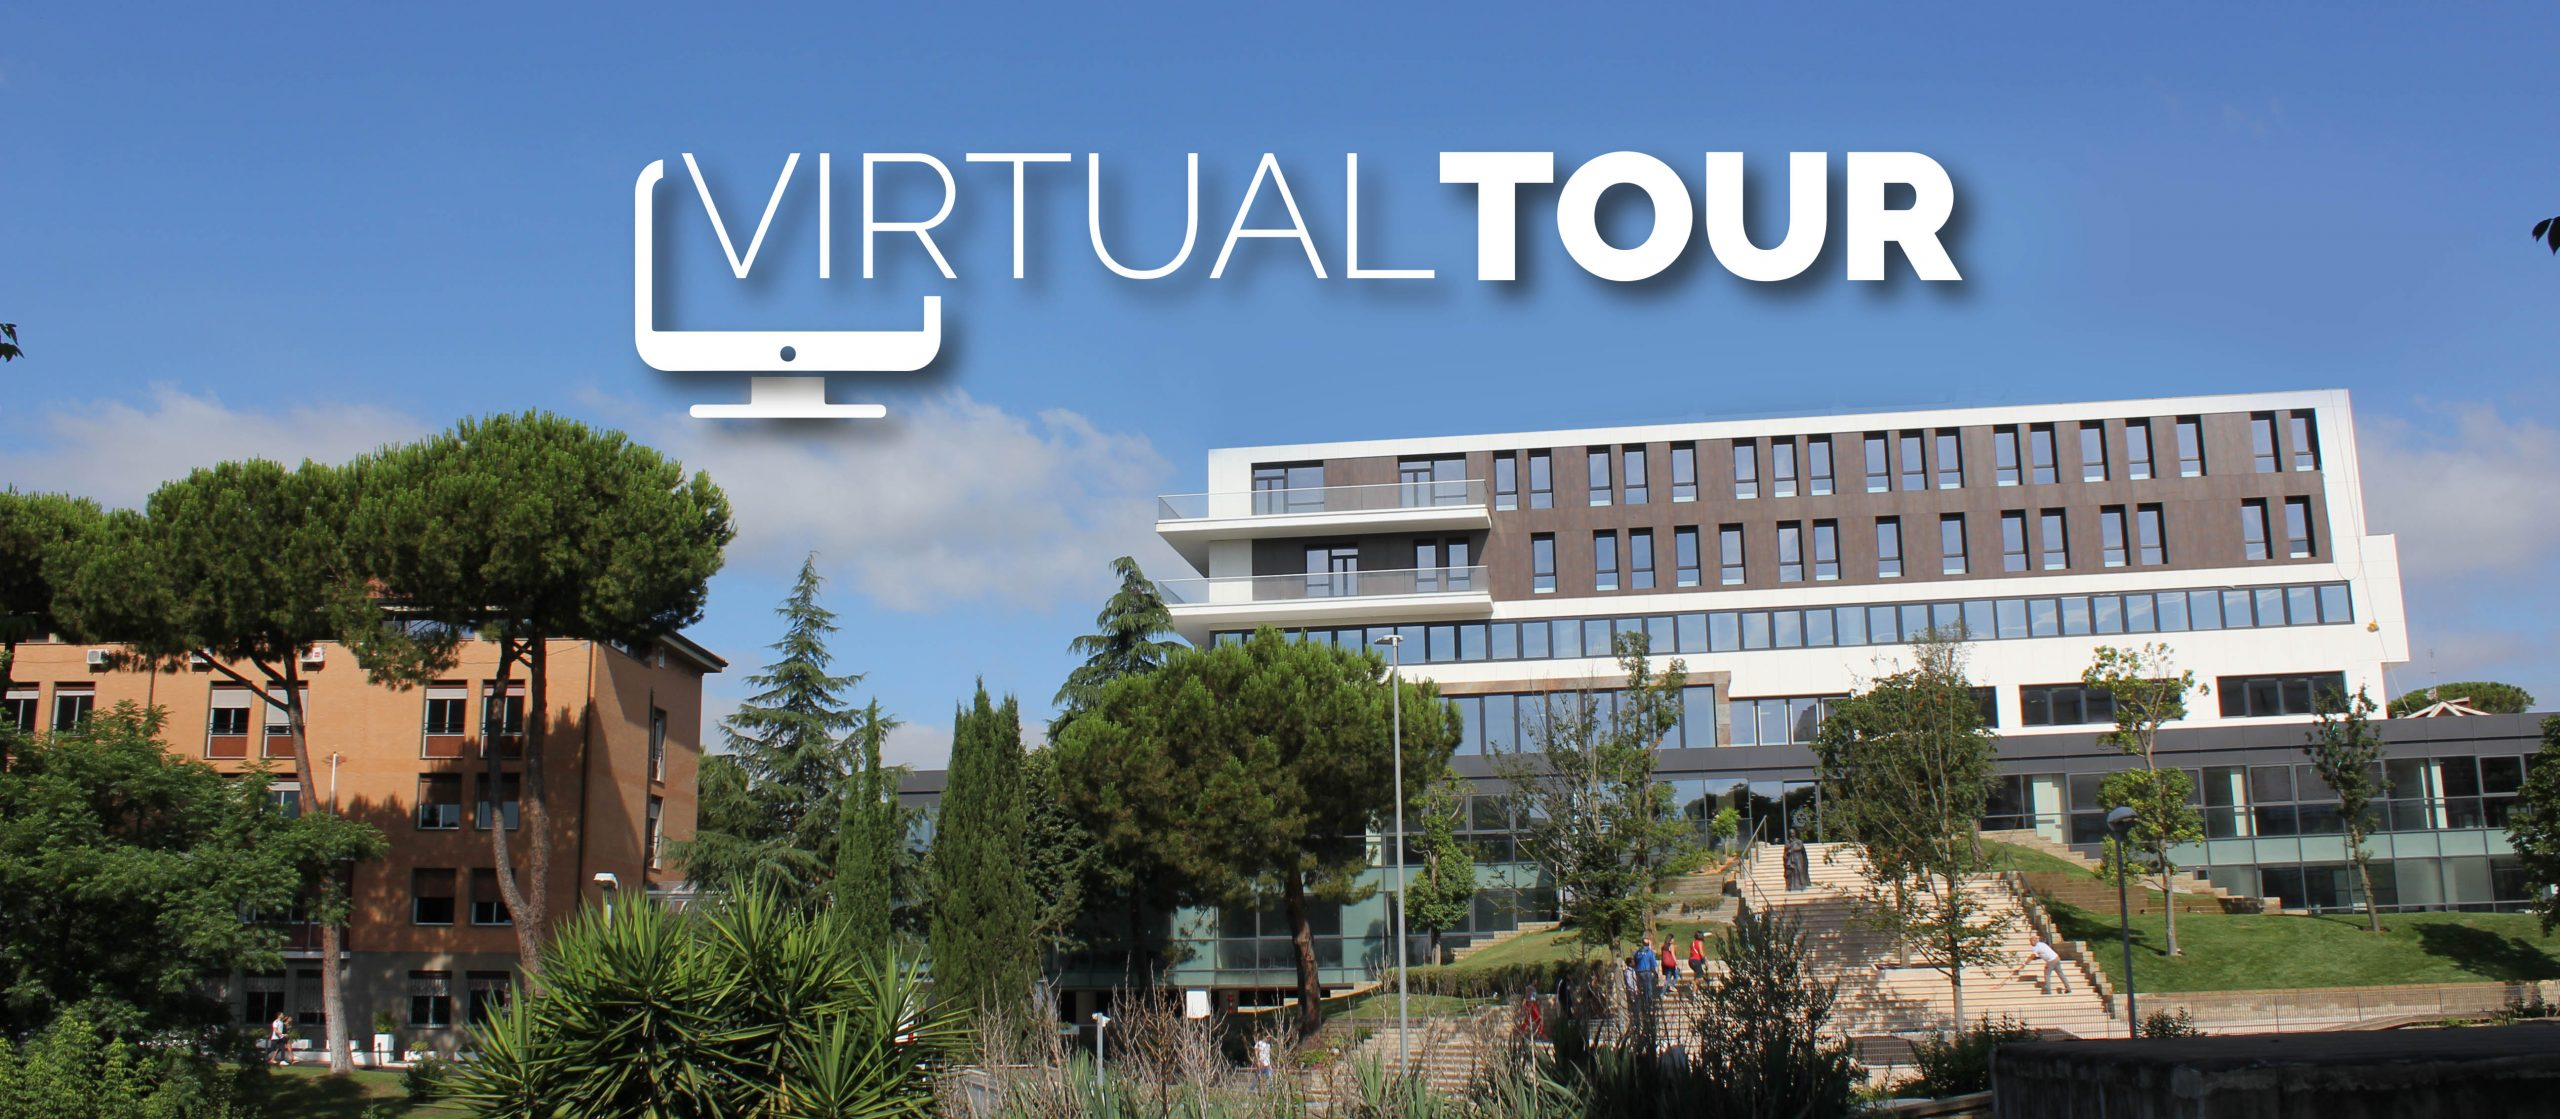 Virtual tour Unicusano